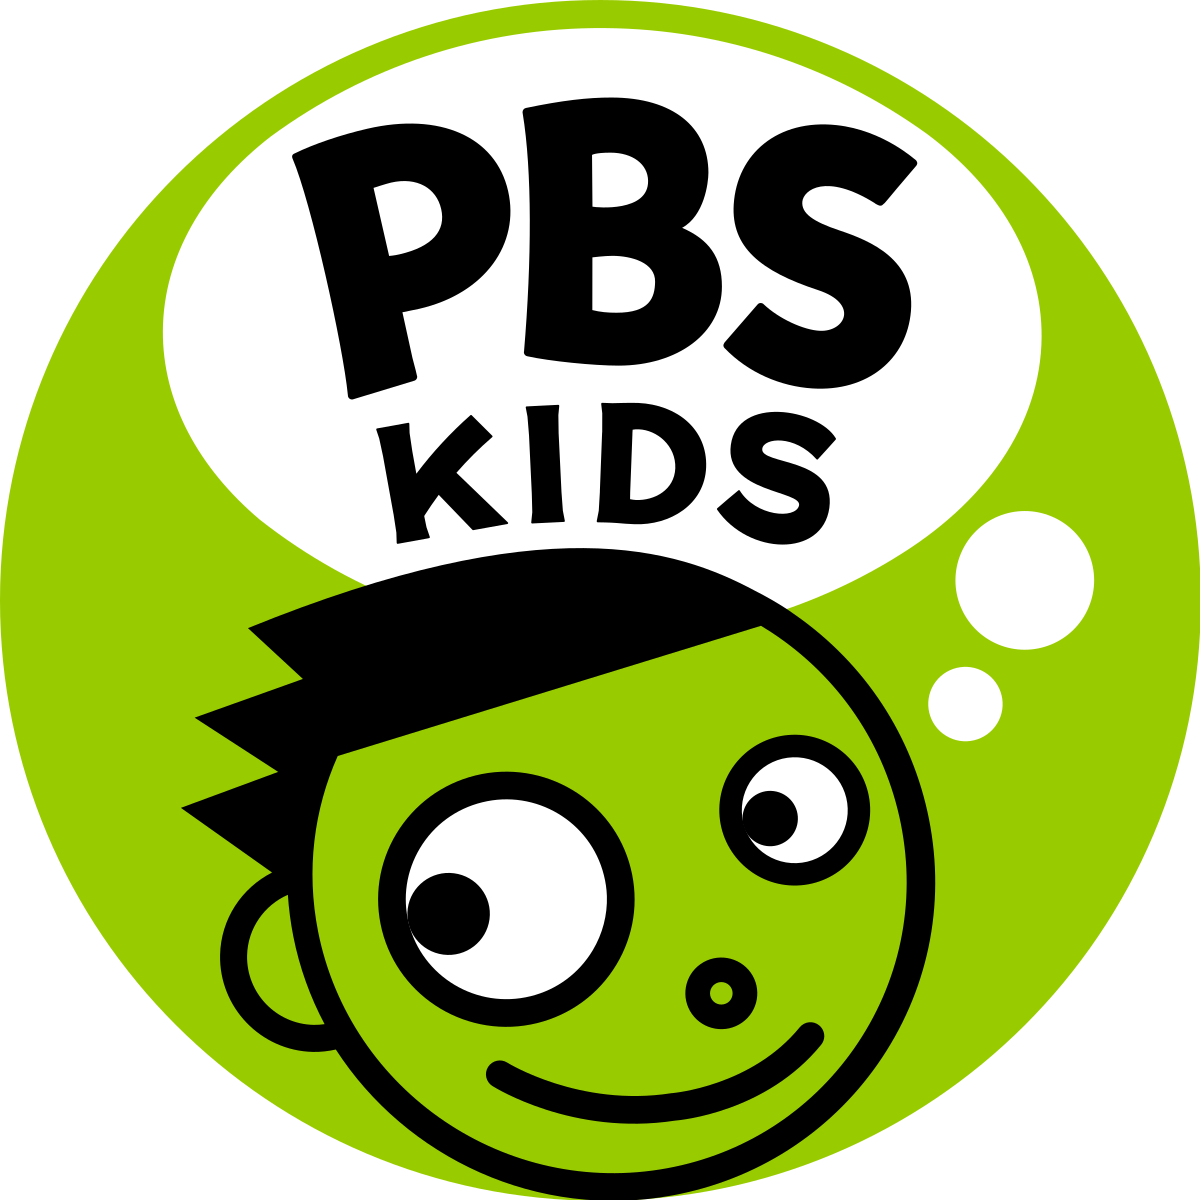 PBS Kids - Wikipedia